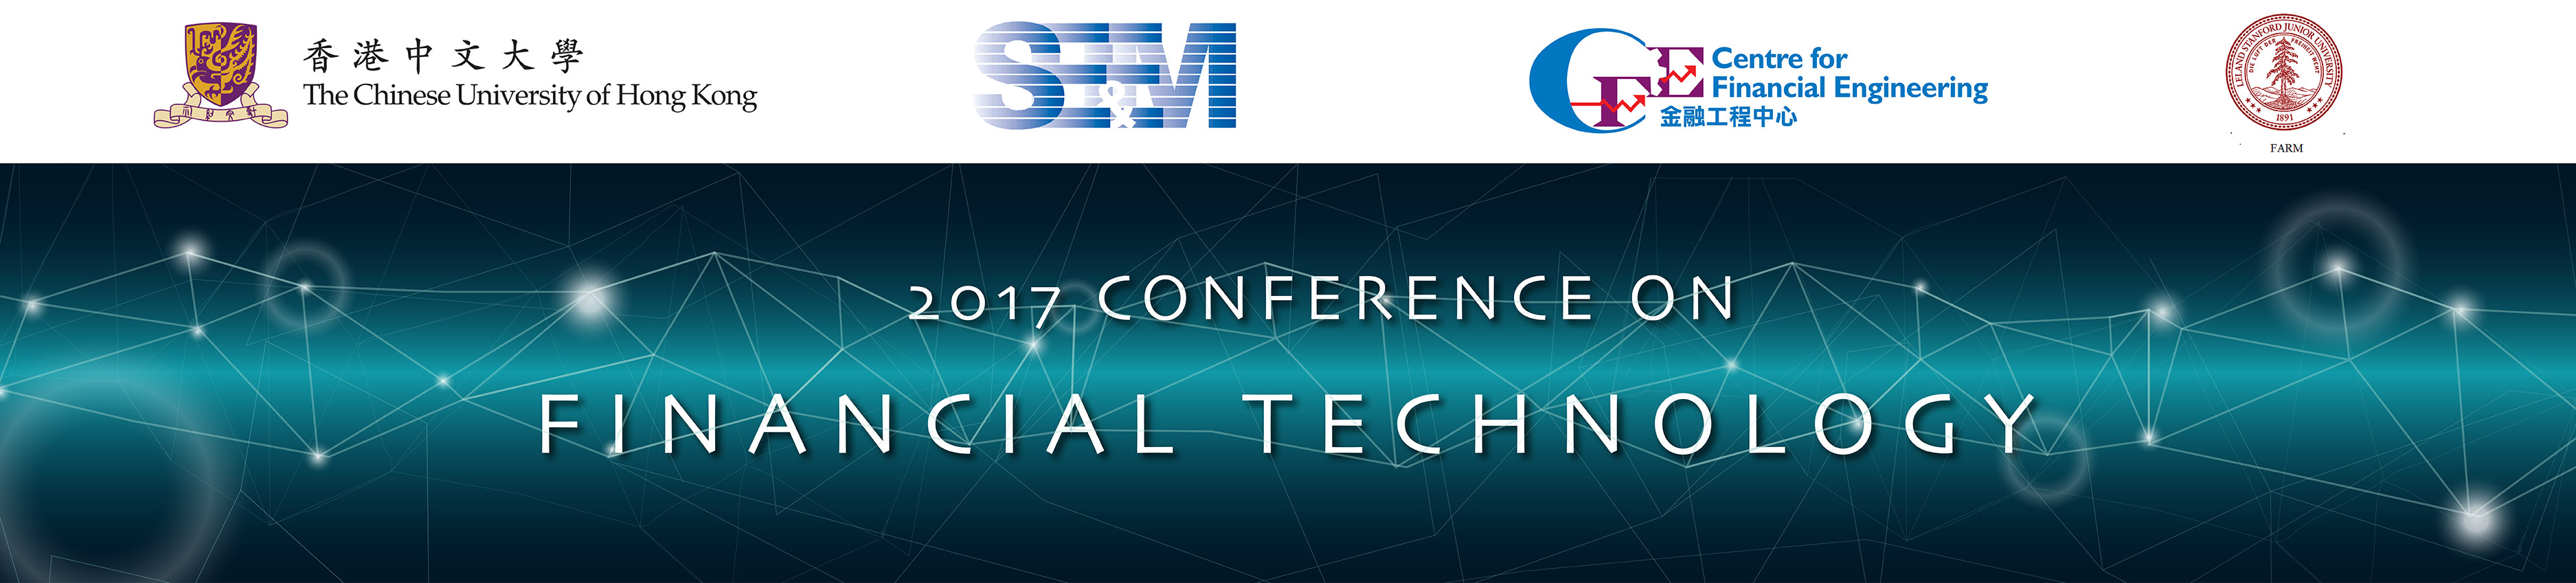 2017 Conference on Financial Technology